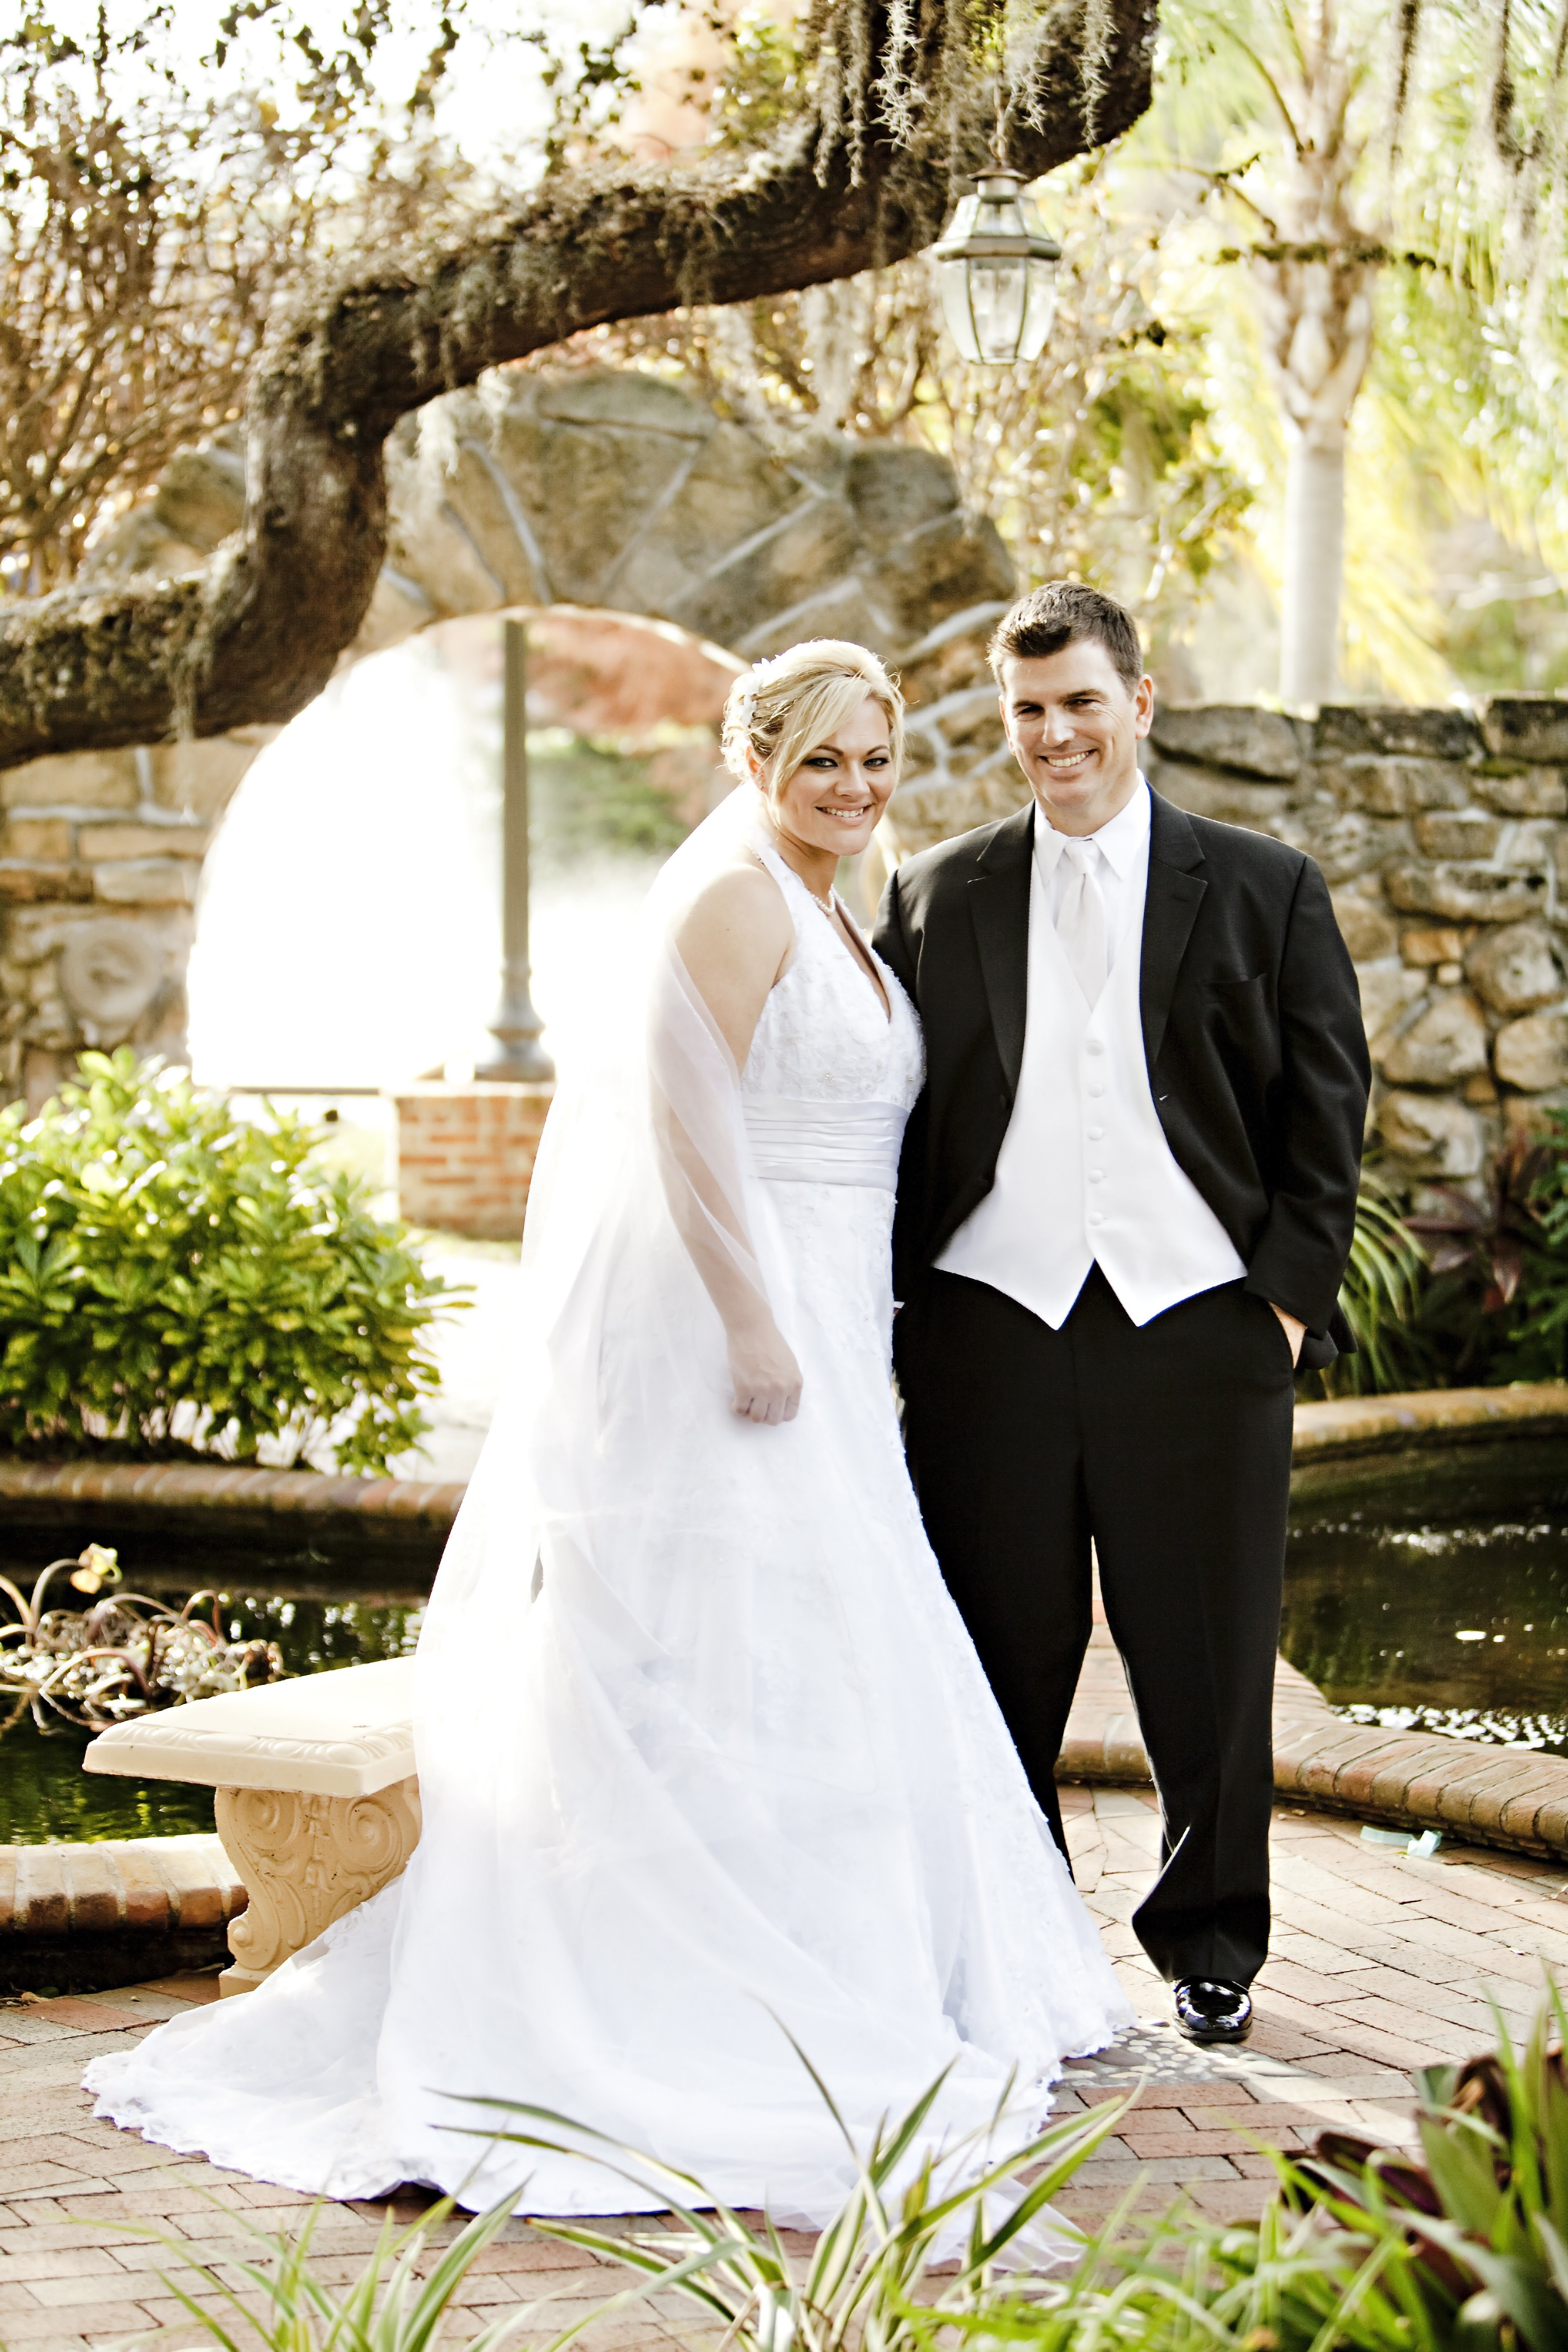 Wedding Bride Groom Woman Marriage Couple Dress Wallpaper And